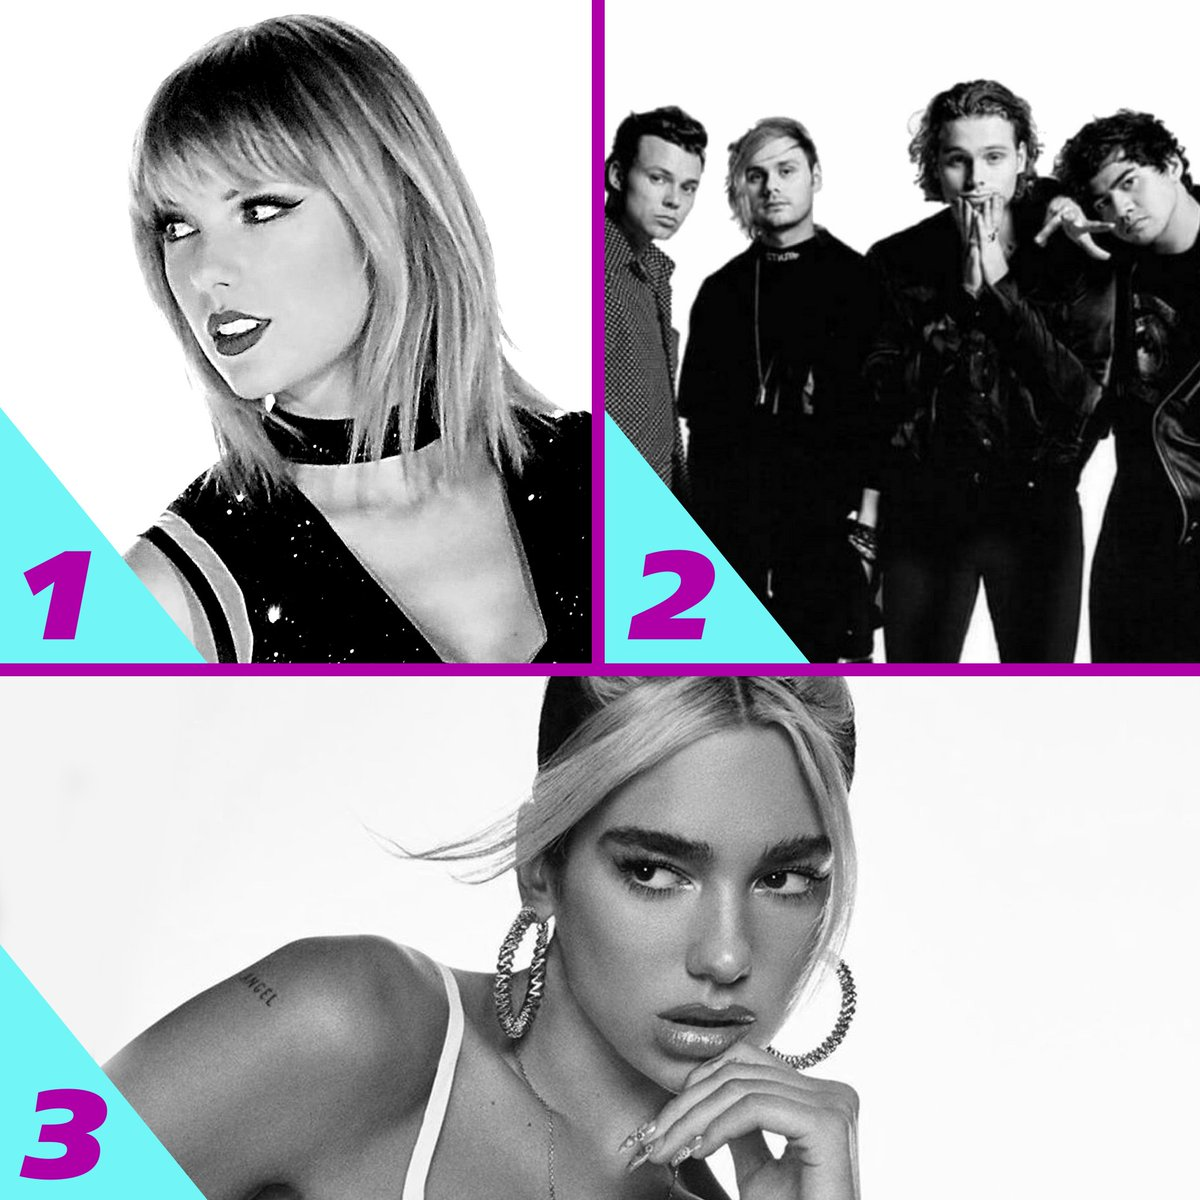 Here's Monday's #RDTop3! 1. @taylorswift13 - #TheMan 2. @5SOS - #OldMe 3. @DUALIPA - #BreakMyHeart<br>http://pic.twitter.com/w84iEuGcVd